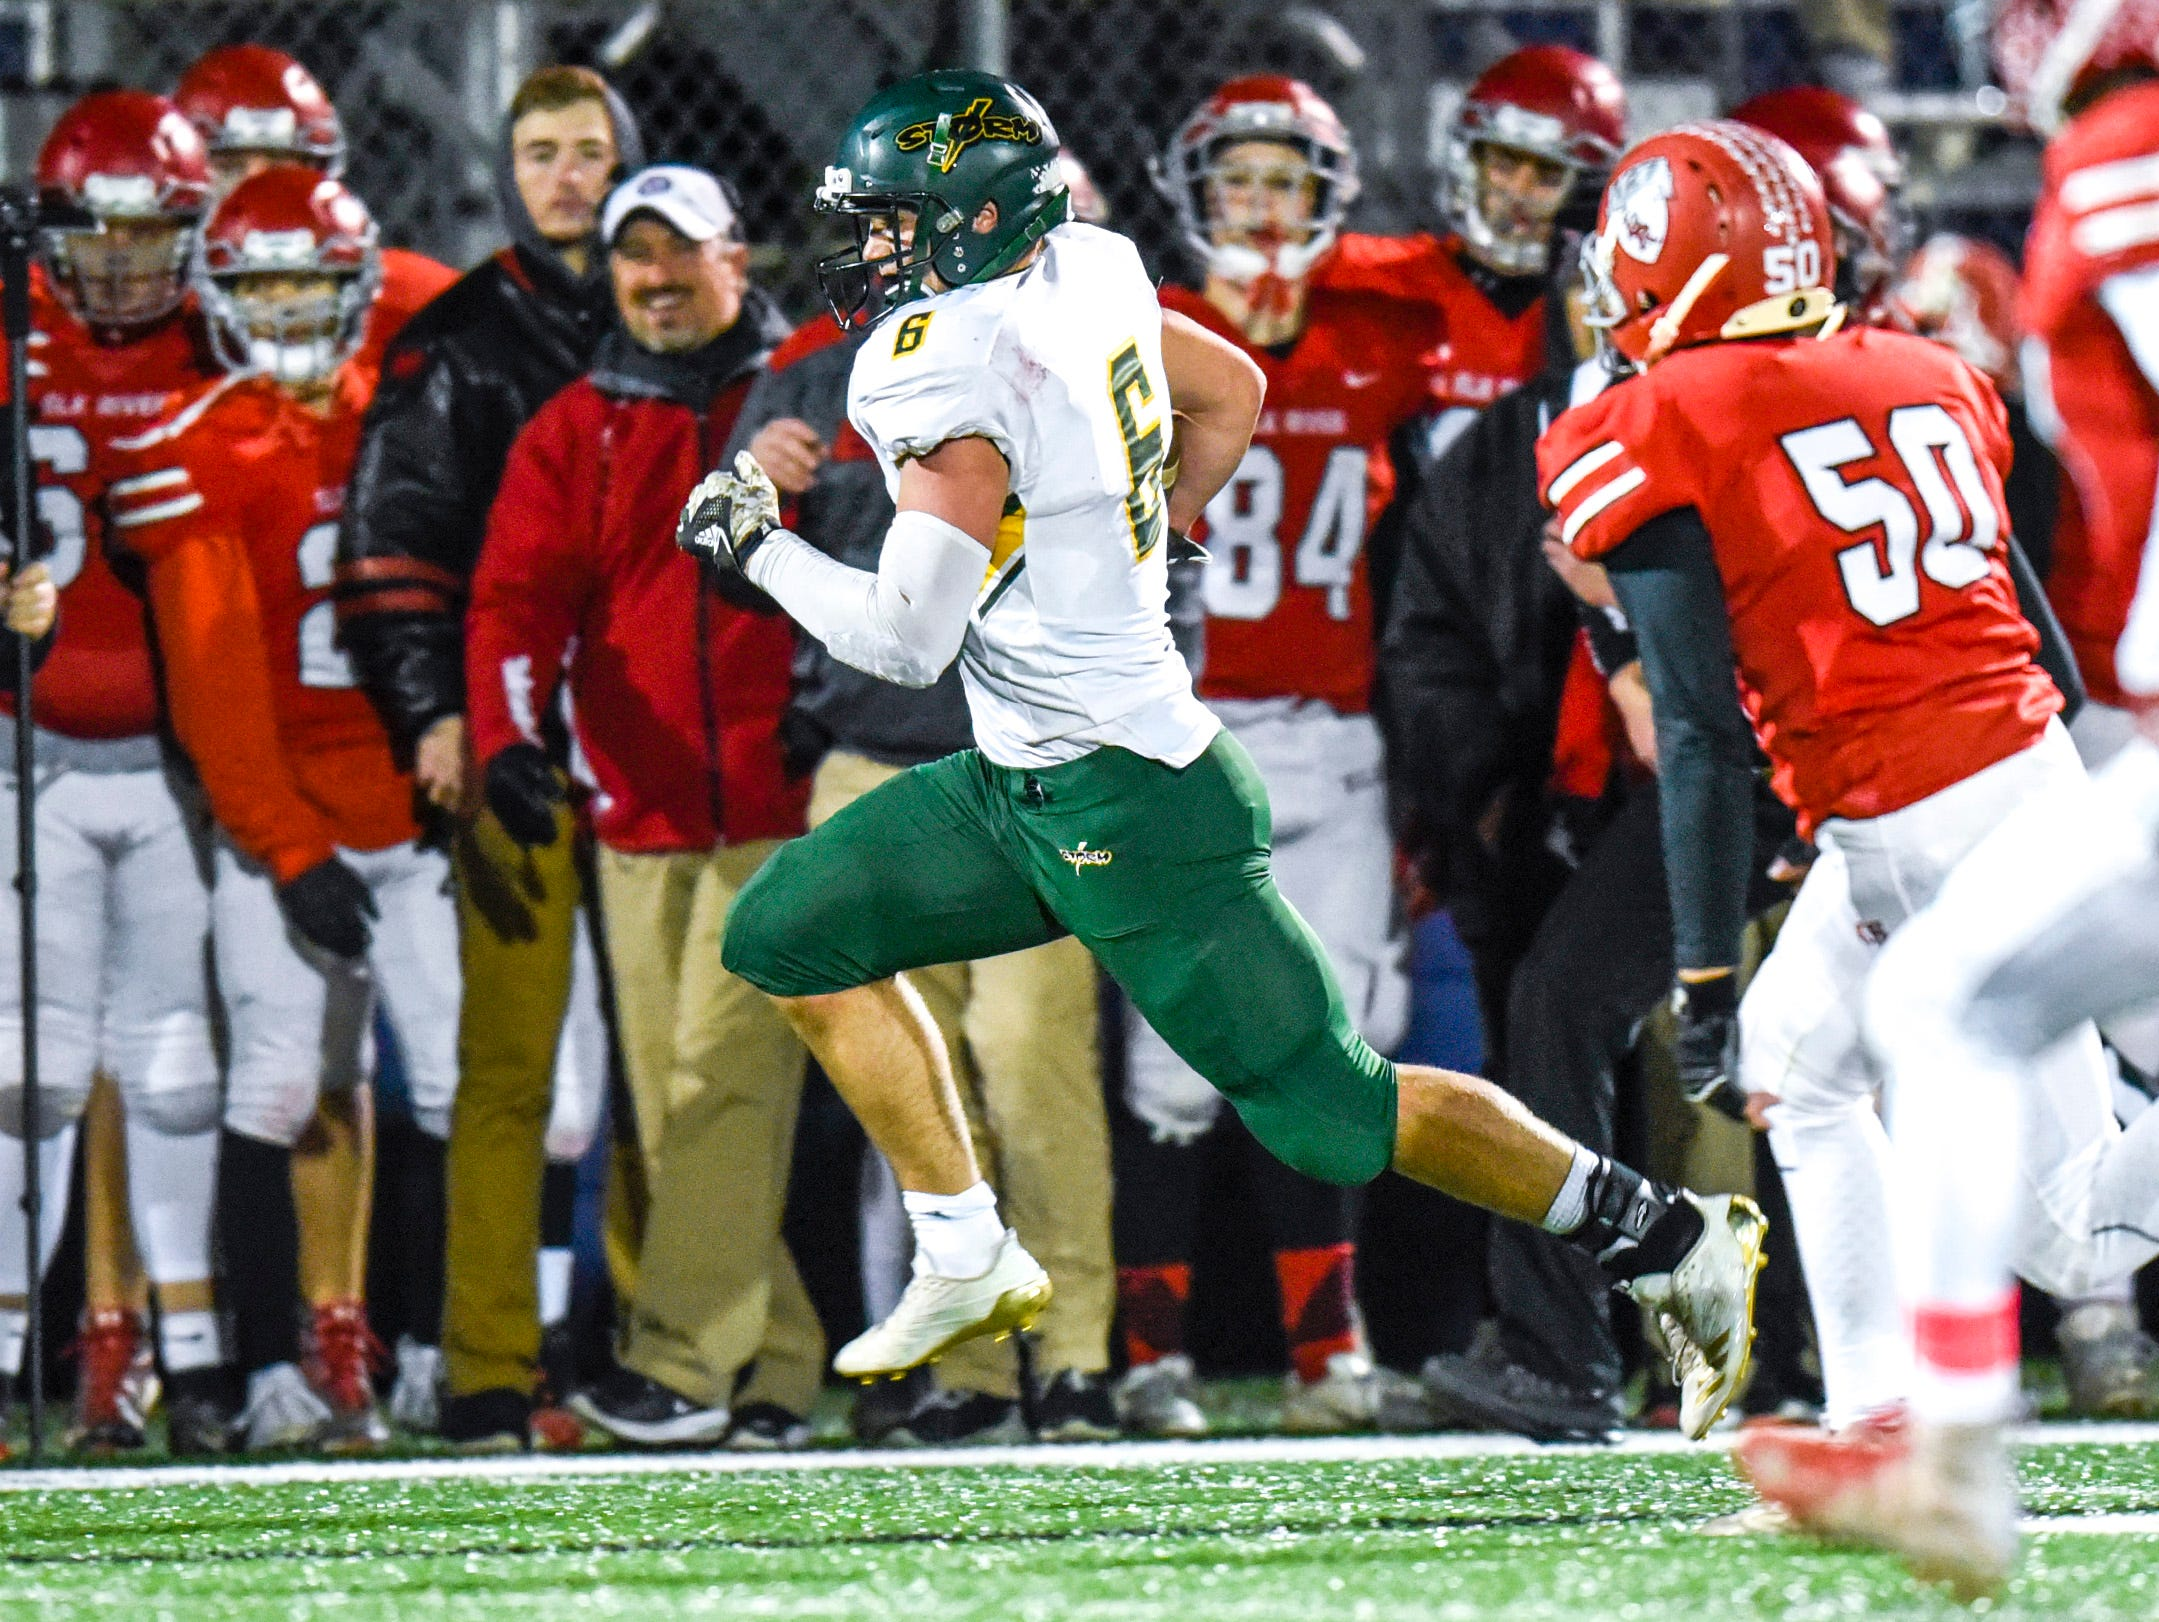 Sauk Rapids' J.D. Bates runs down the sideline against Elk River during the first half Friday, Nov. 2, in the Section 6-5A championship at Buffalo High School.